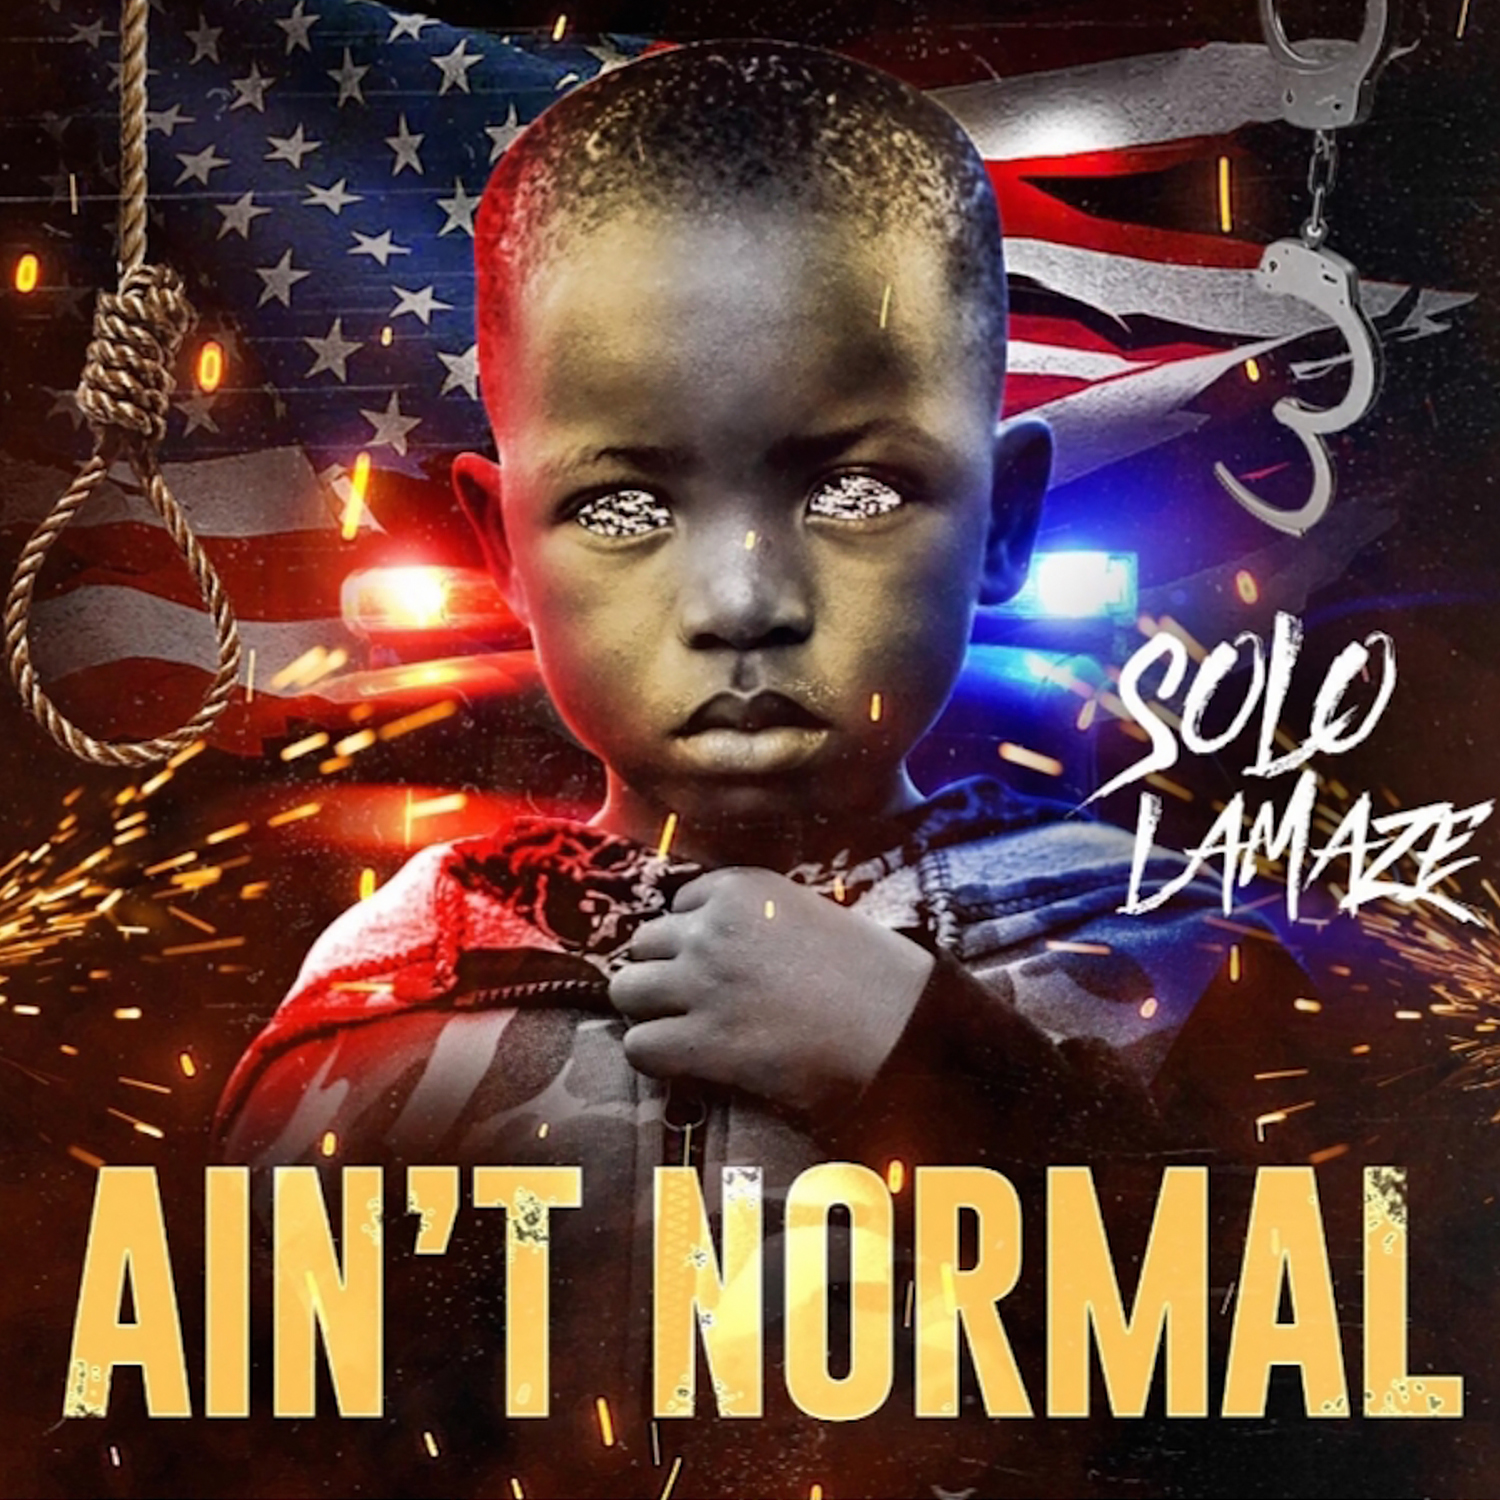 solo lamaze ain't normal blm black lives matter